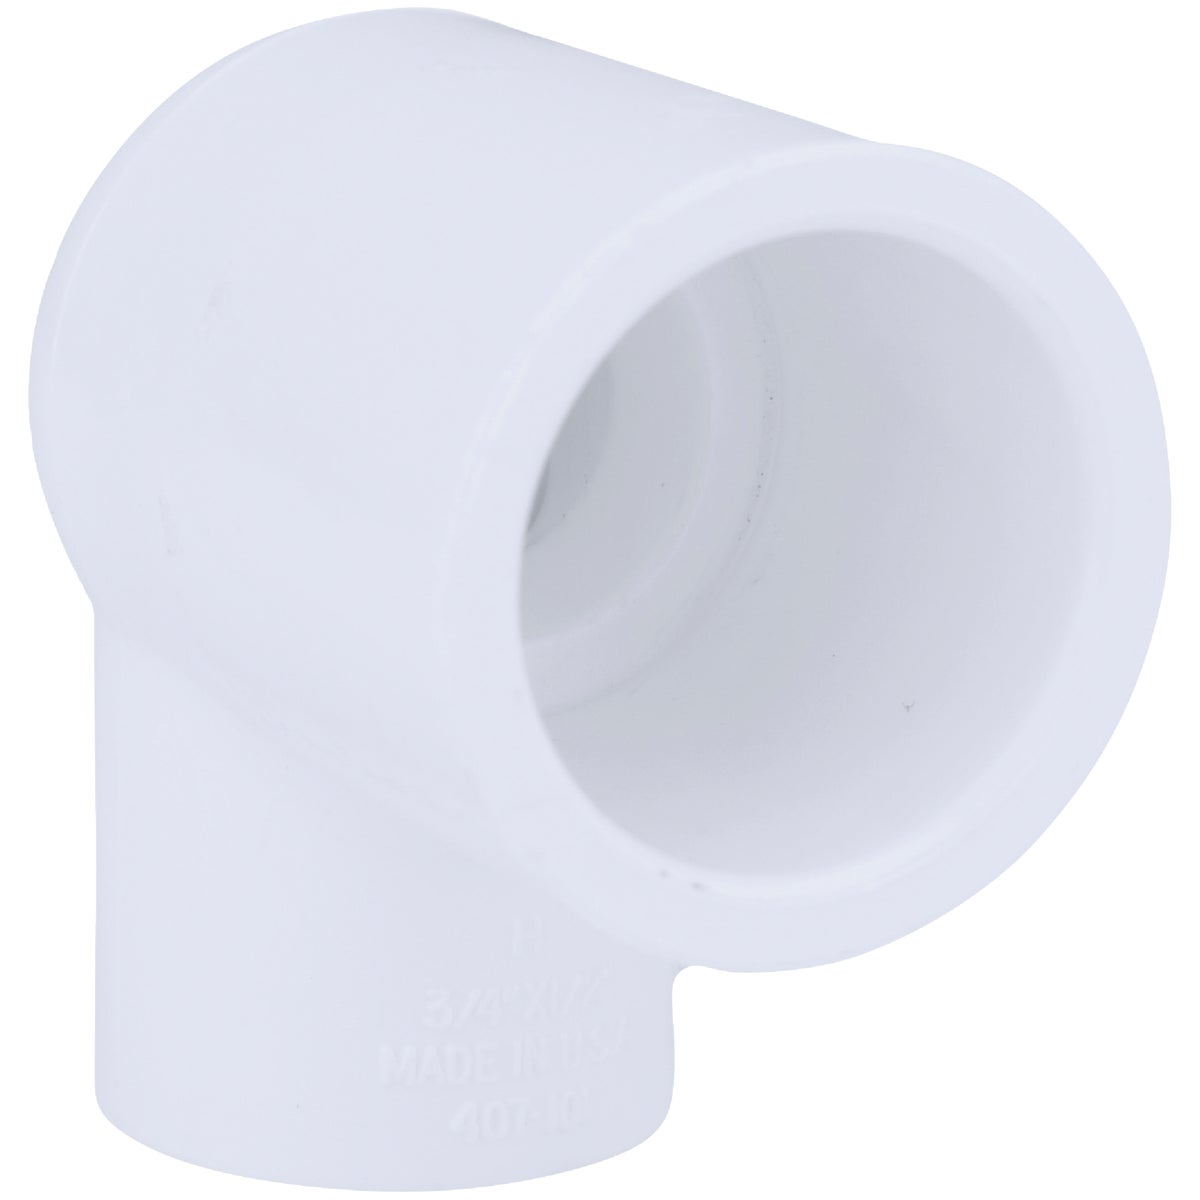 3/4X1/2 PVC SXF ELBOW - 34175 by Genova Inc